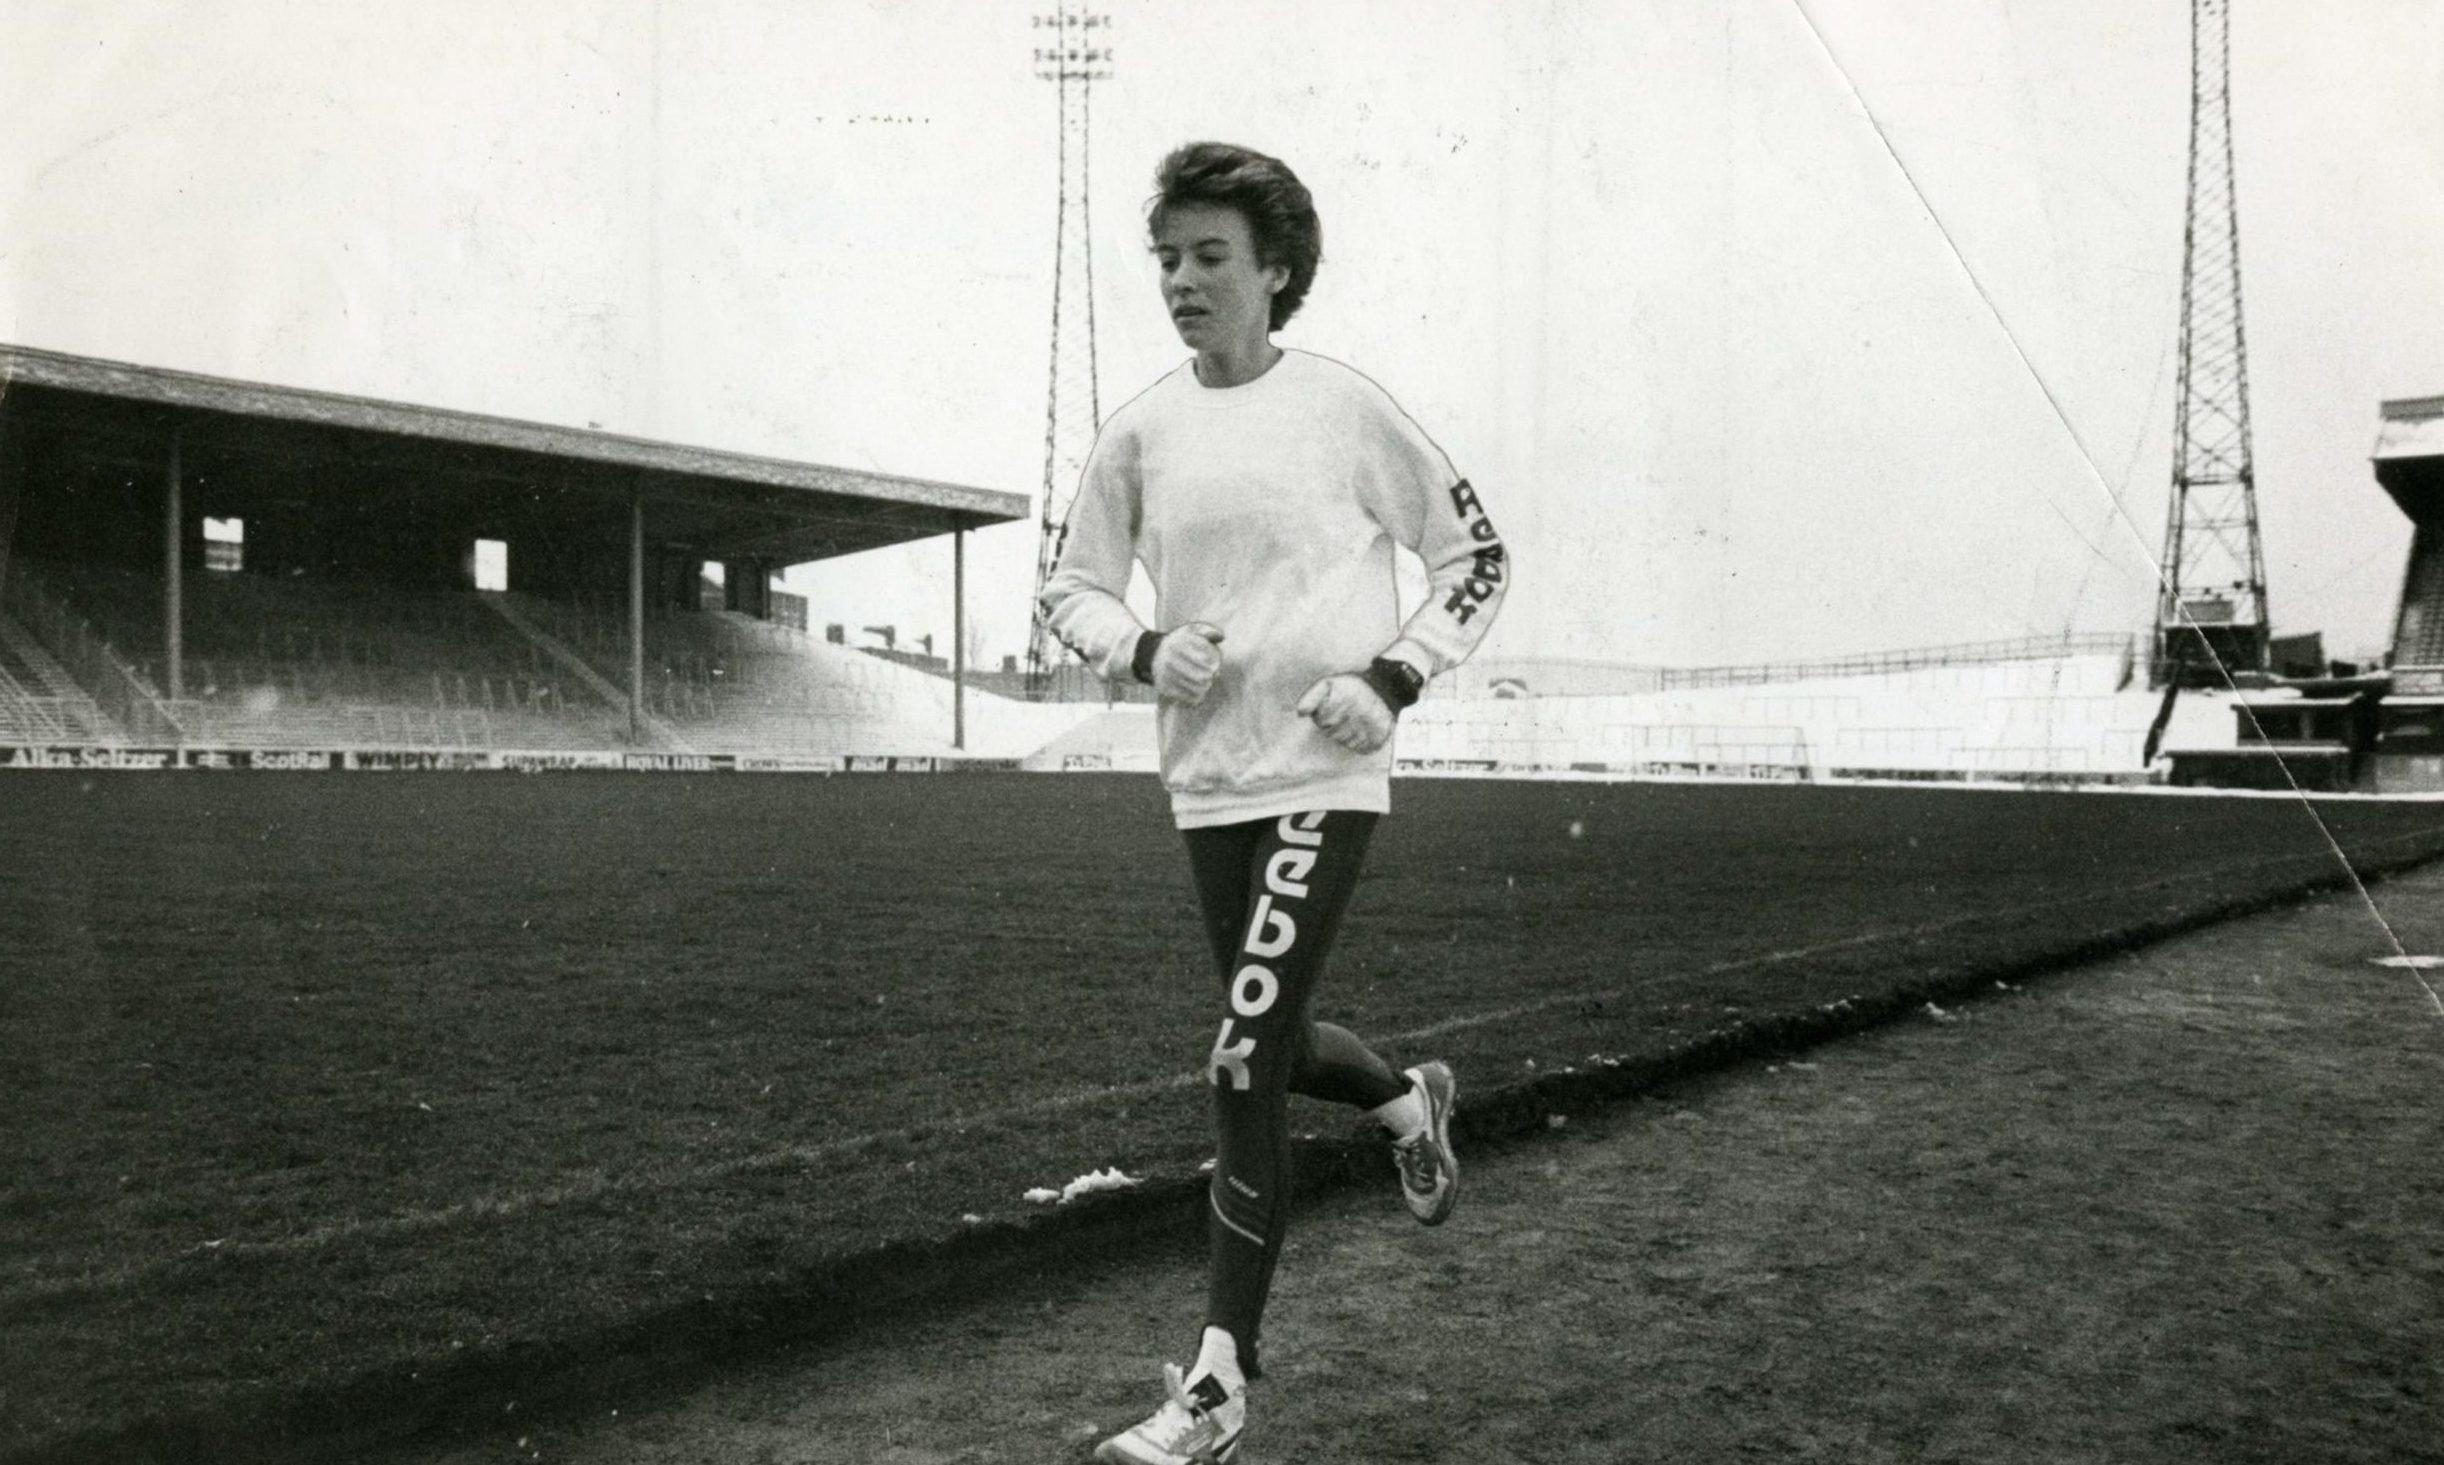 Athlete Liz Lynch (Liz McColgan) pictured during a training session.